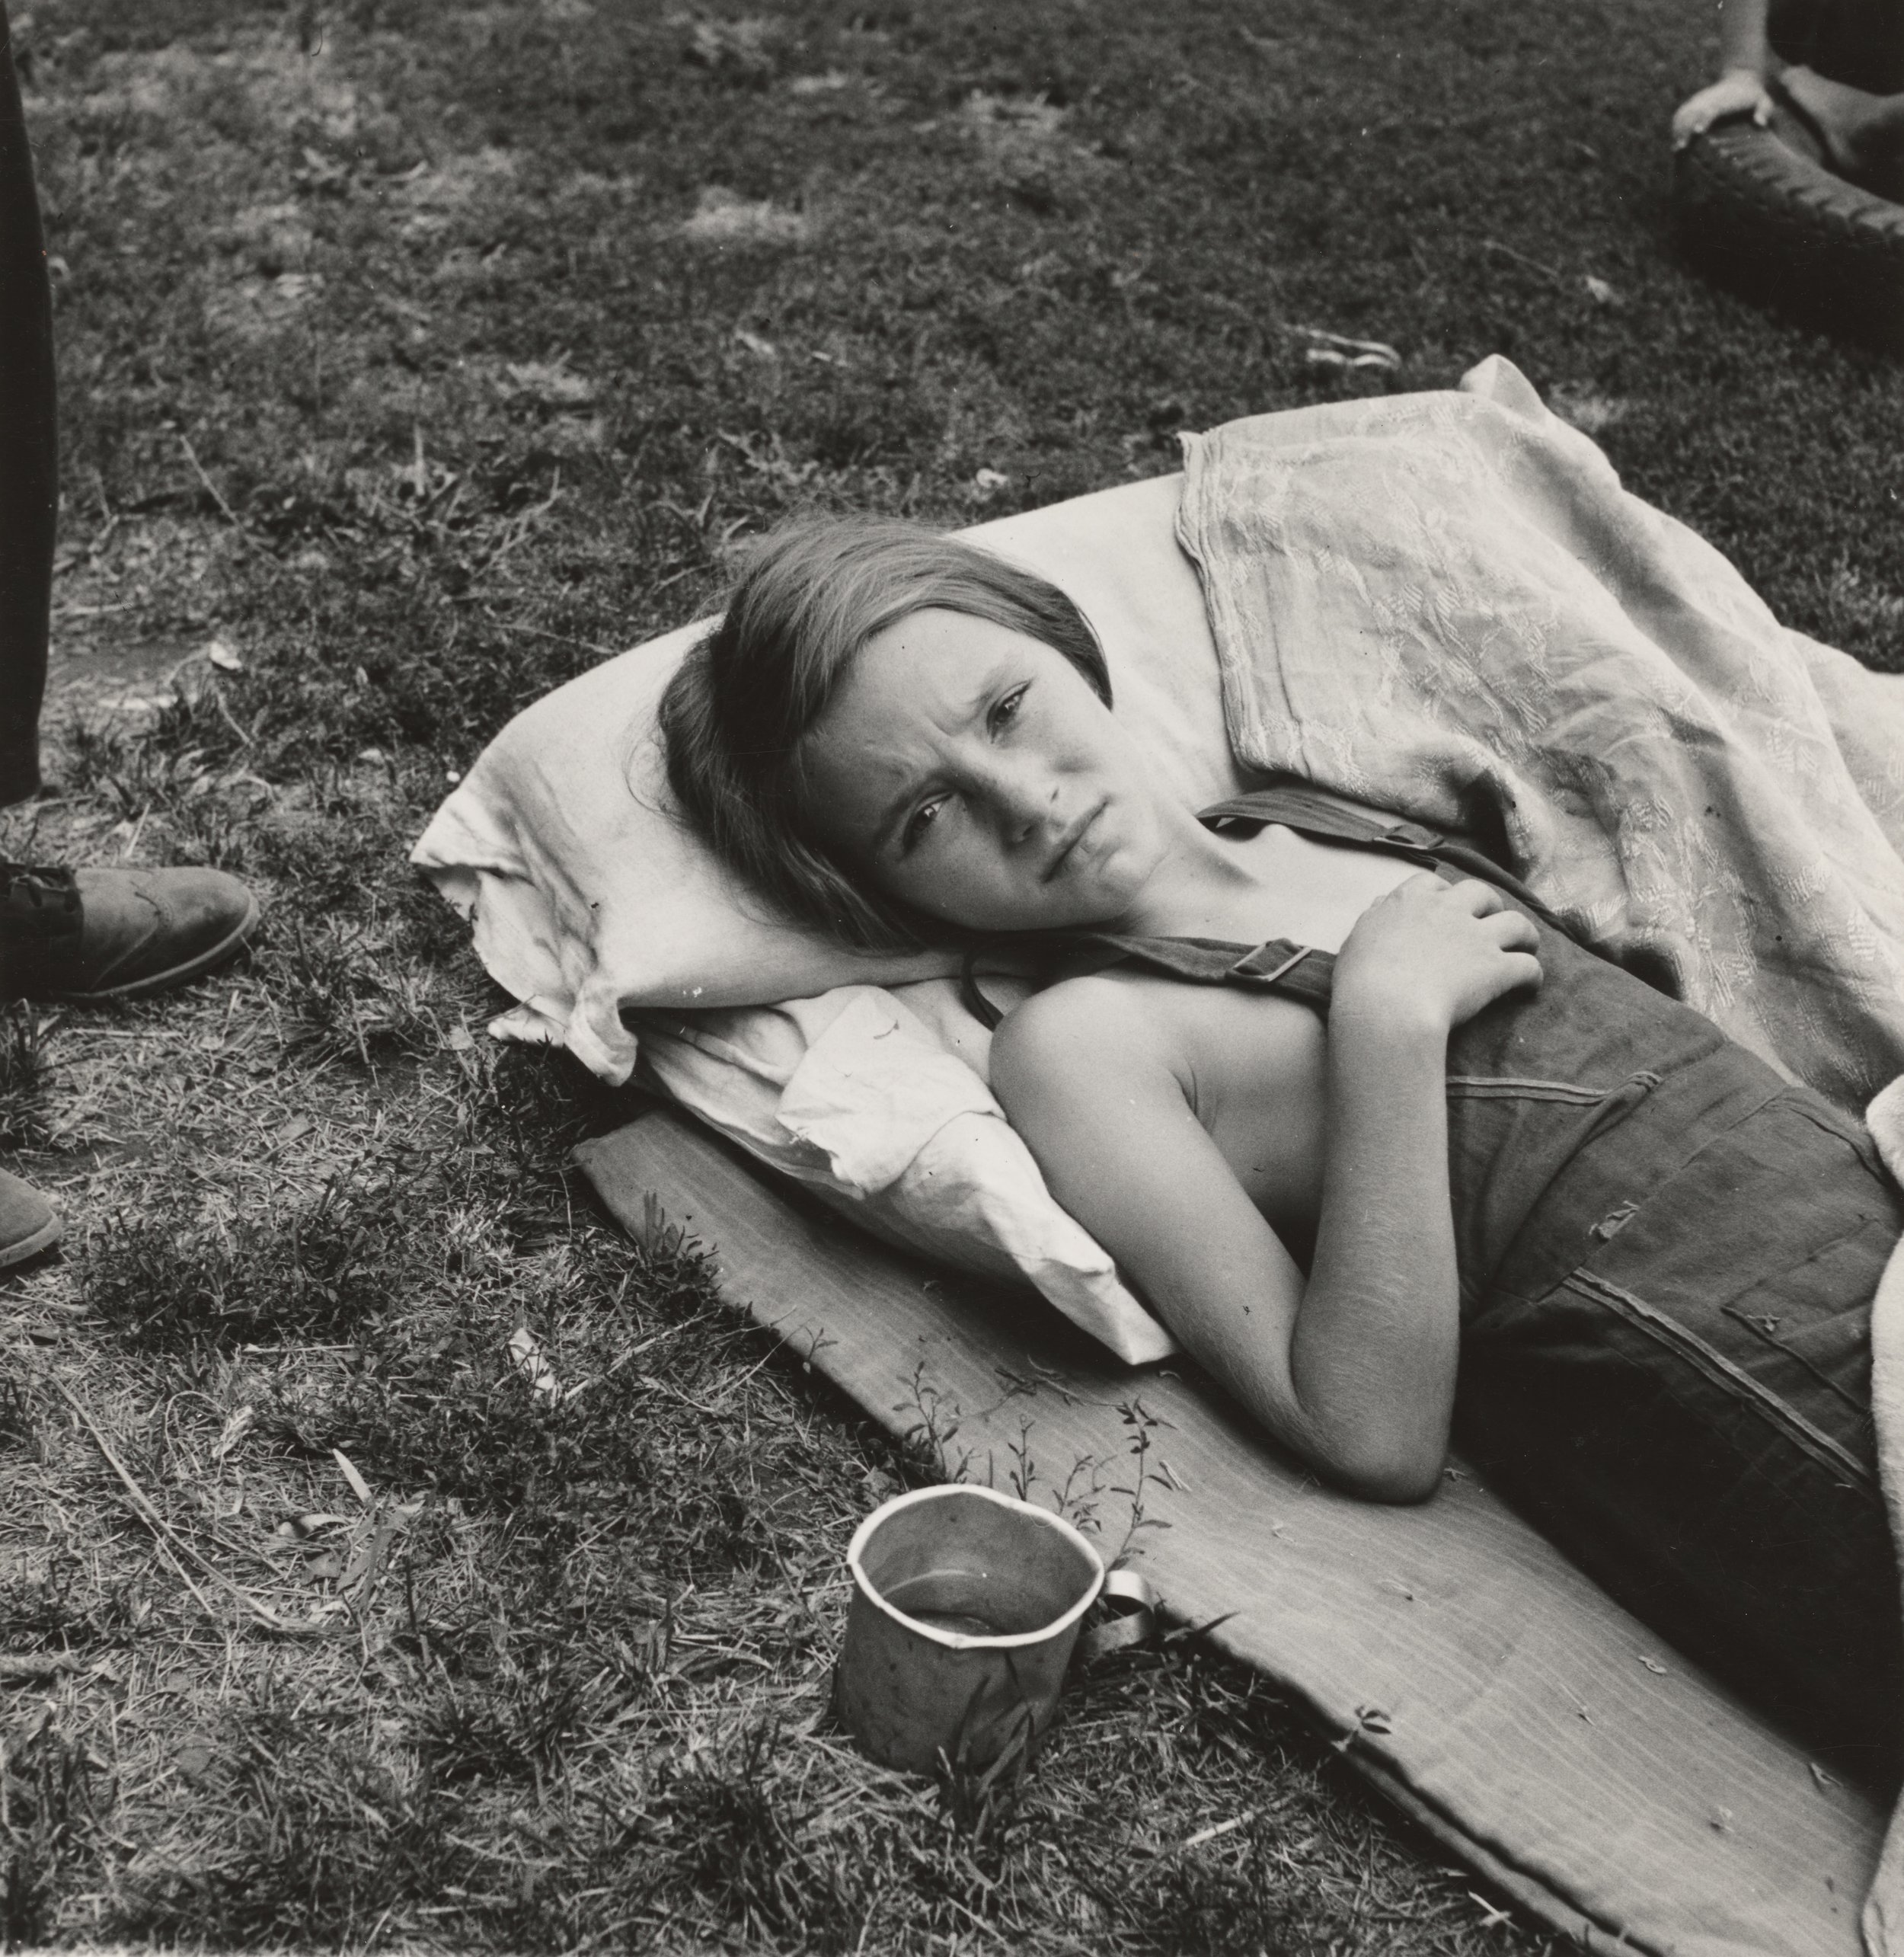 young, sick child laying on blankets and a pillow on the grass next to man standing in boots and a metal can on the ground